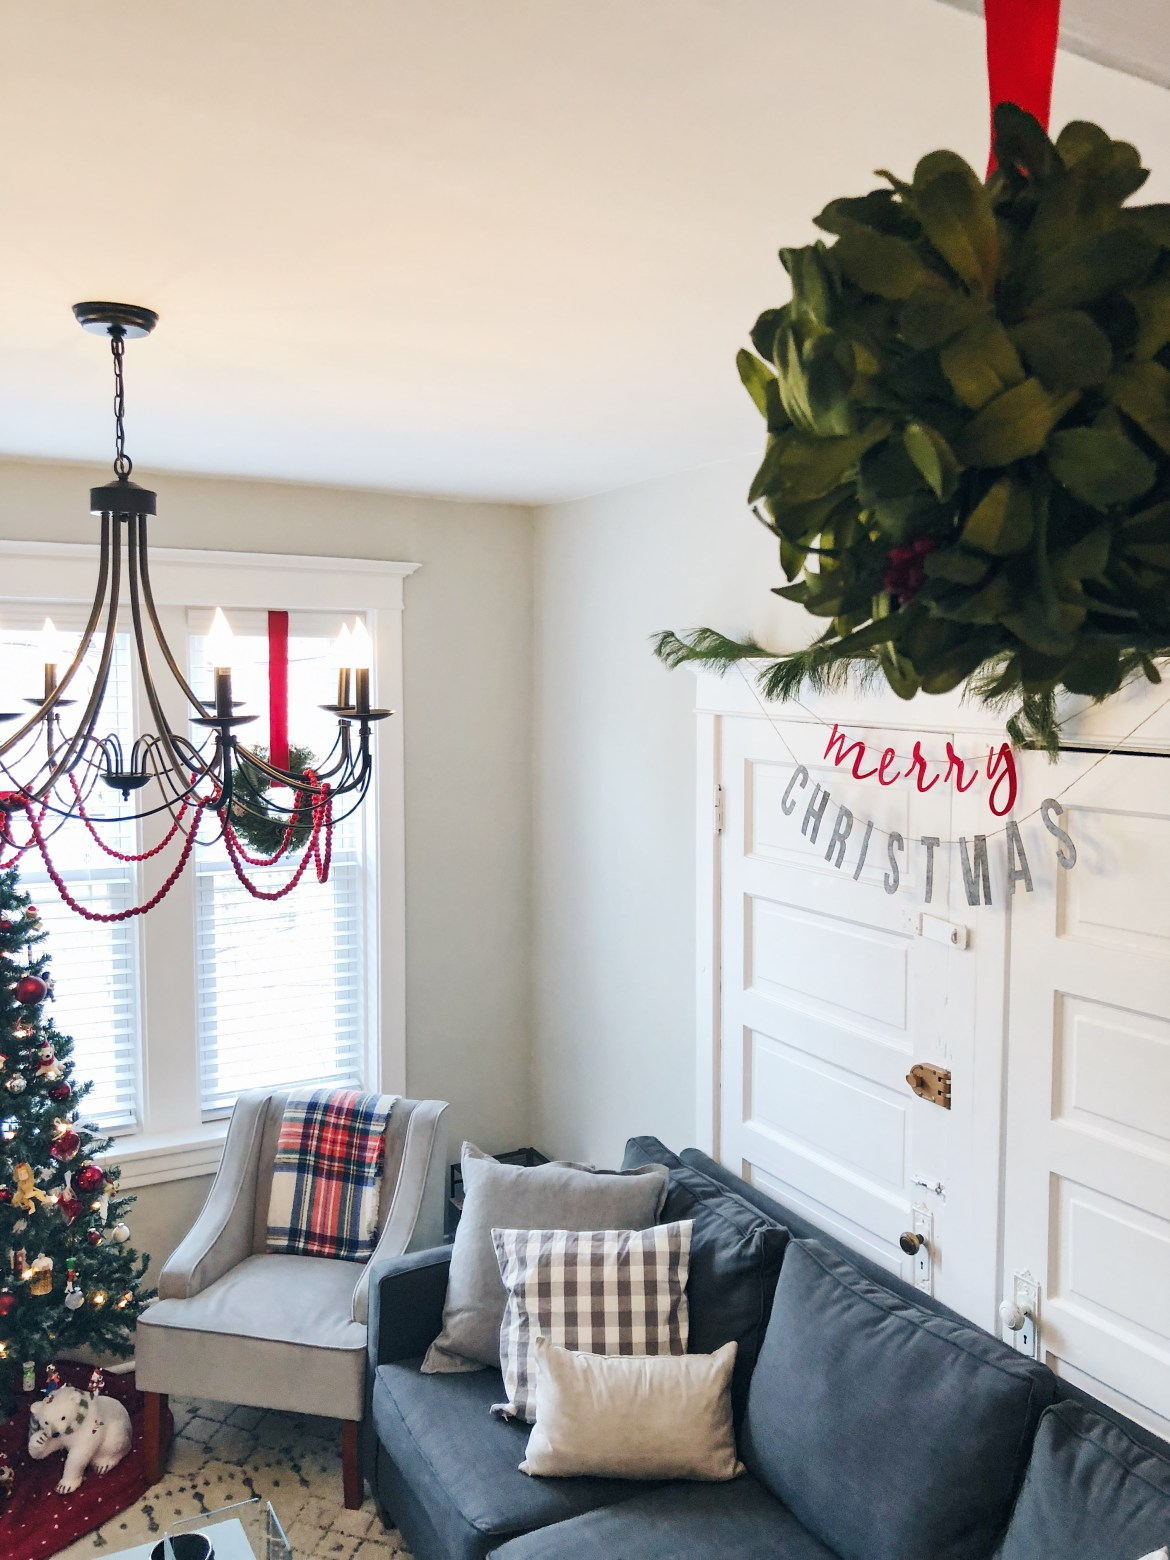 Our Living Room Christmas Decor - Jessie Barnes Bernhardt